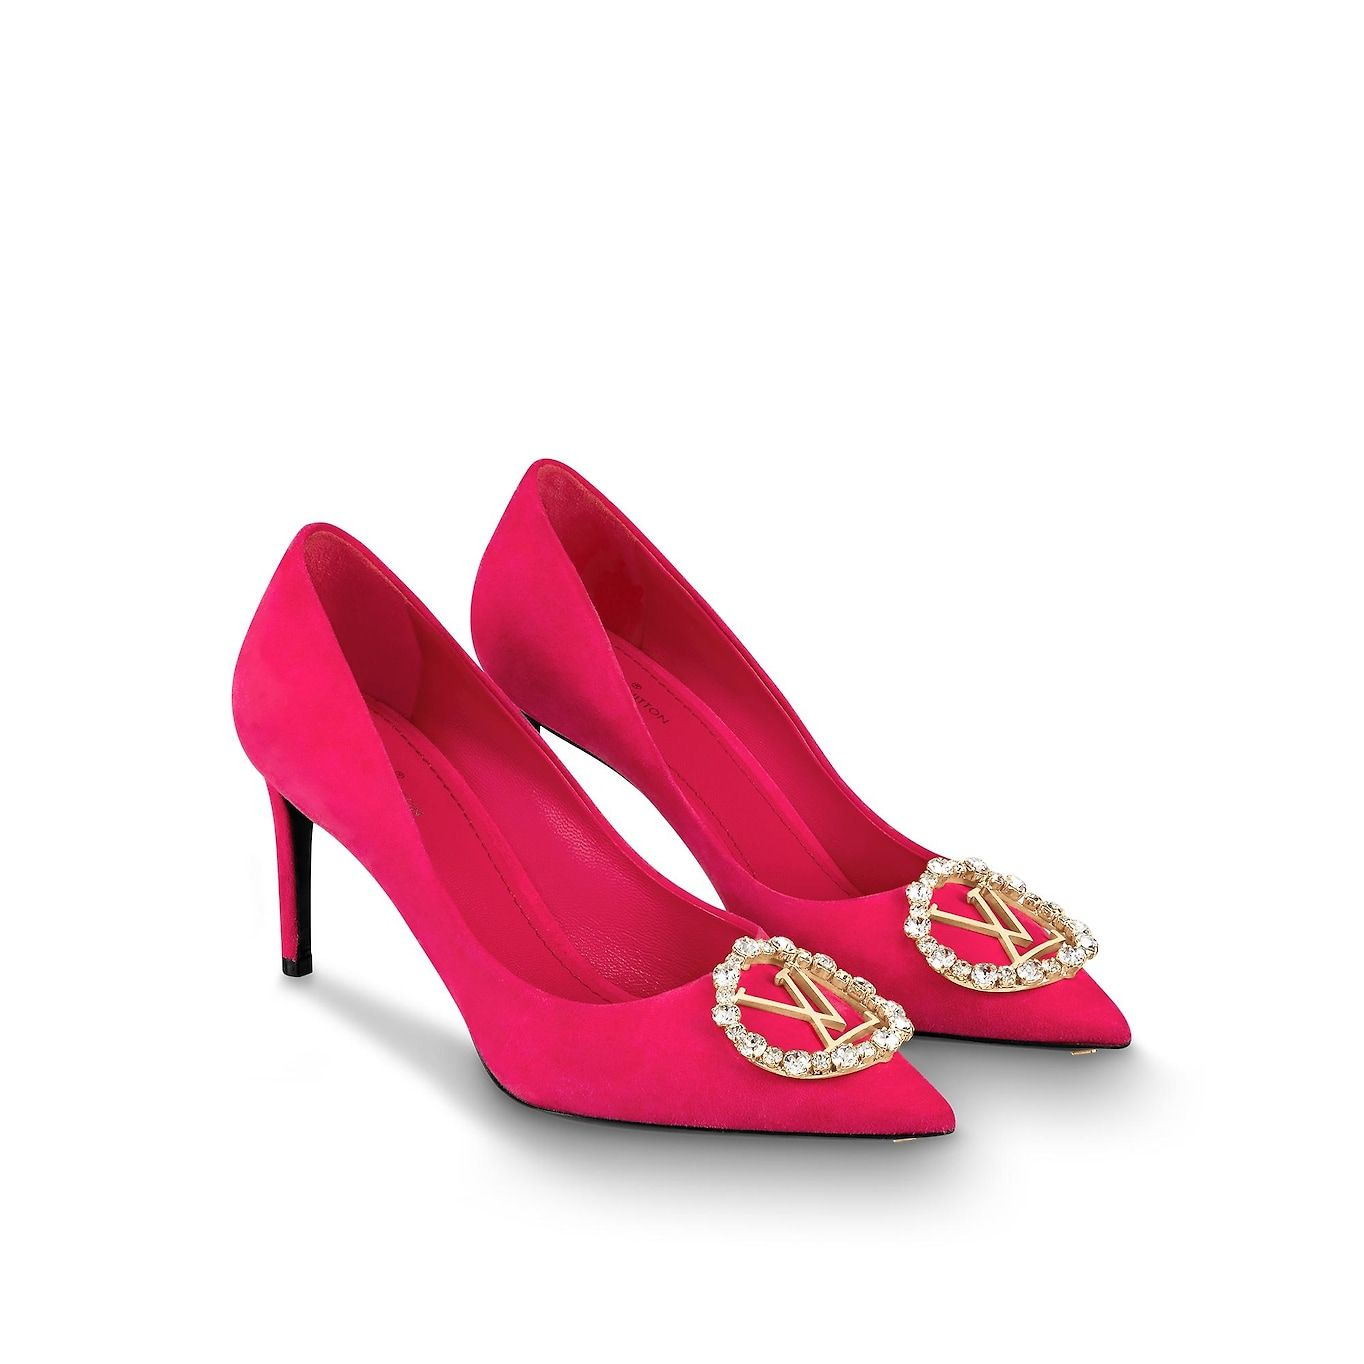 ef9c8fcb80bd View 2 - Madeleine Pump in Women s Shoes All Collections collections by Louis  Vuitton